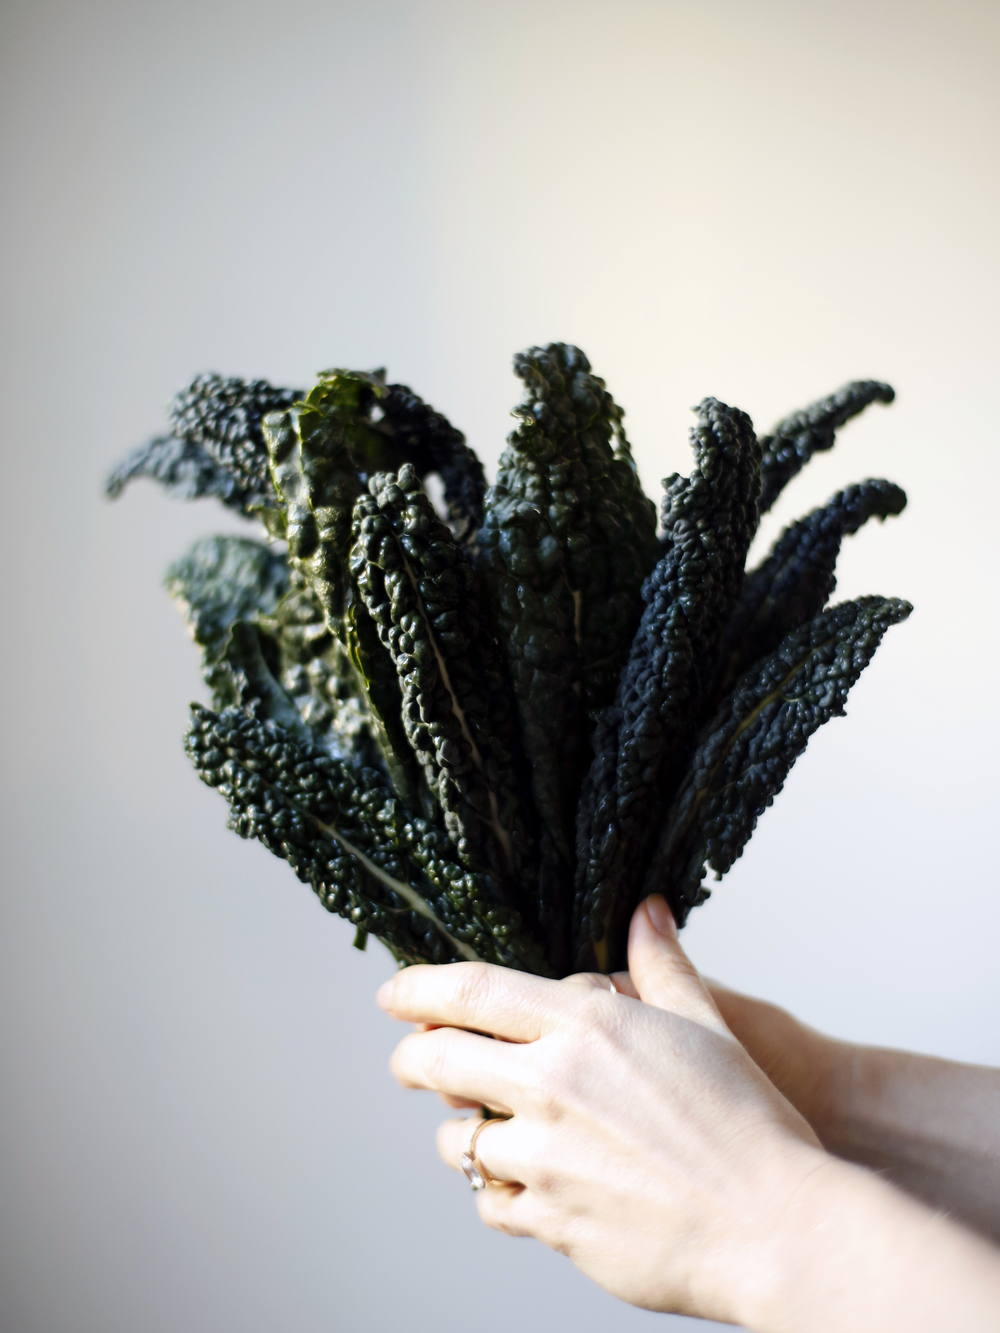 Photography By Alexa Gray, of Superfood Superlife